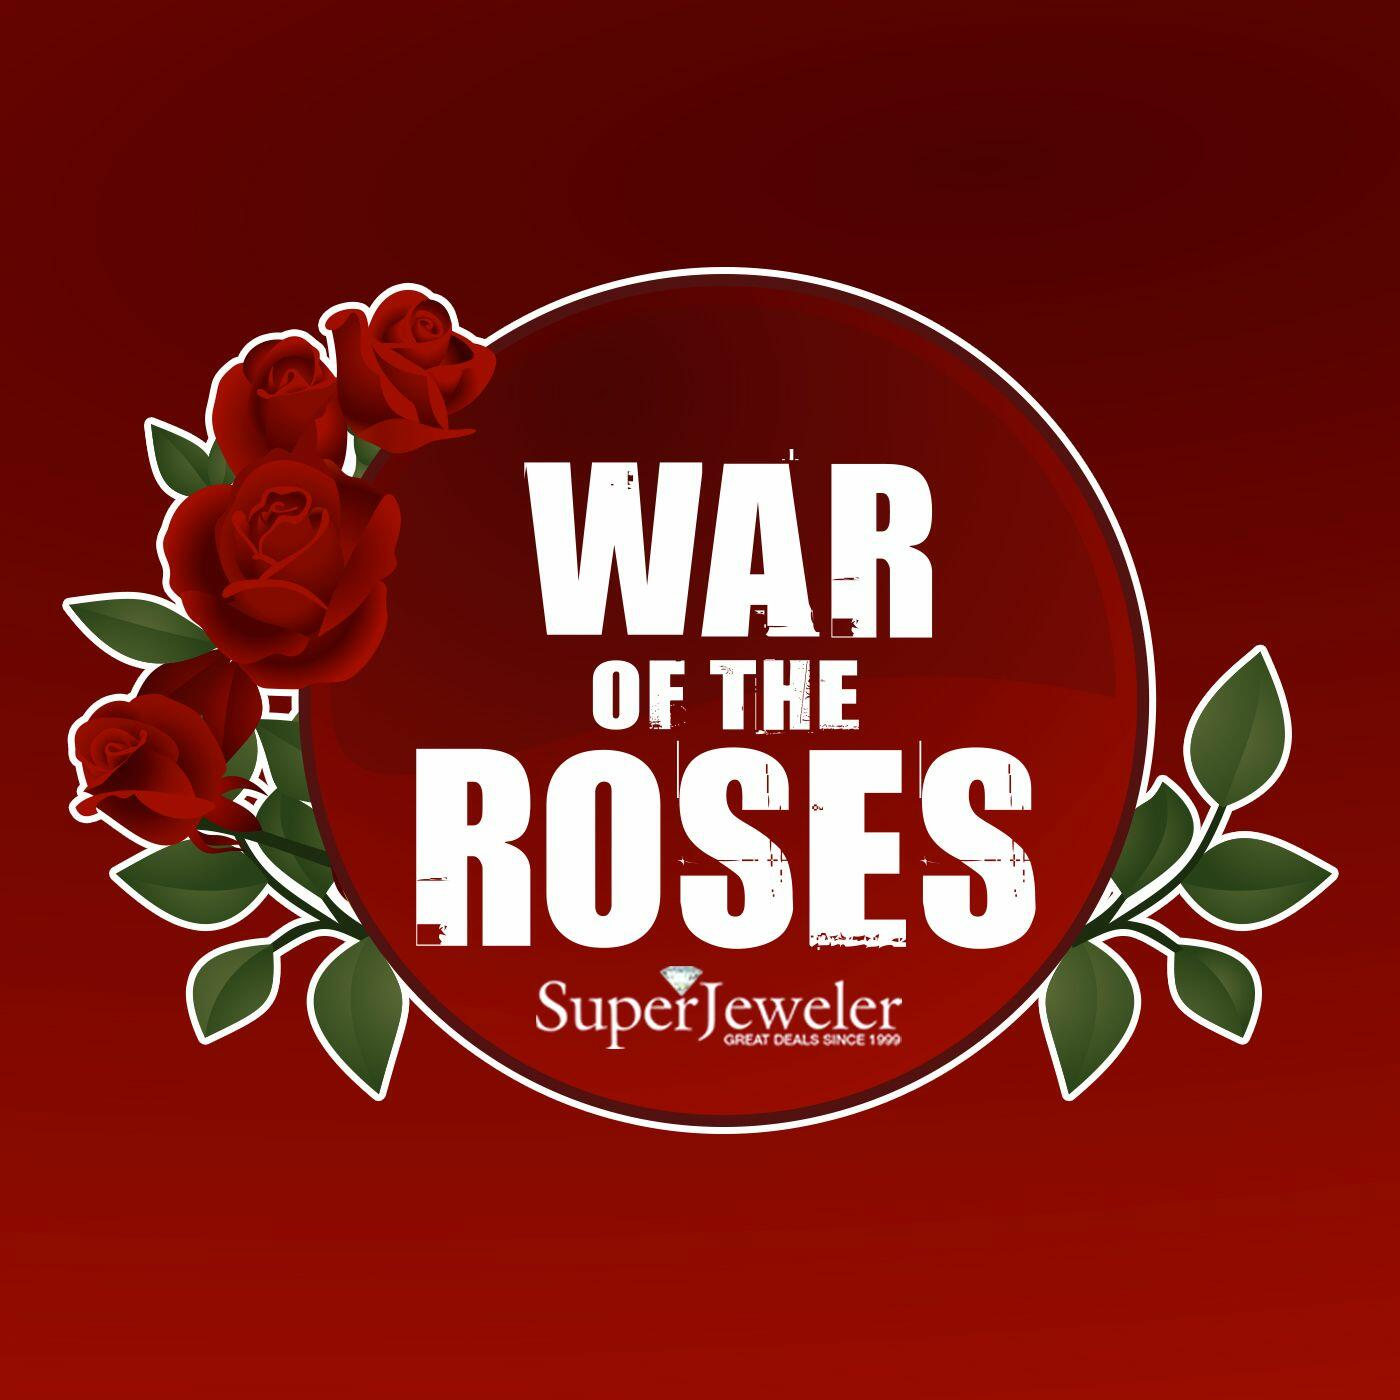 Listen Free to 103 5 KTU War of the Roses on iHeartRadio